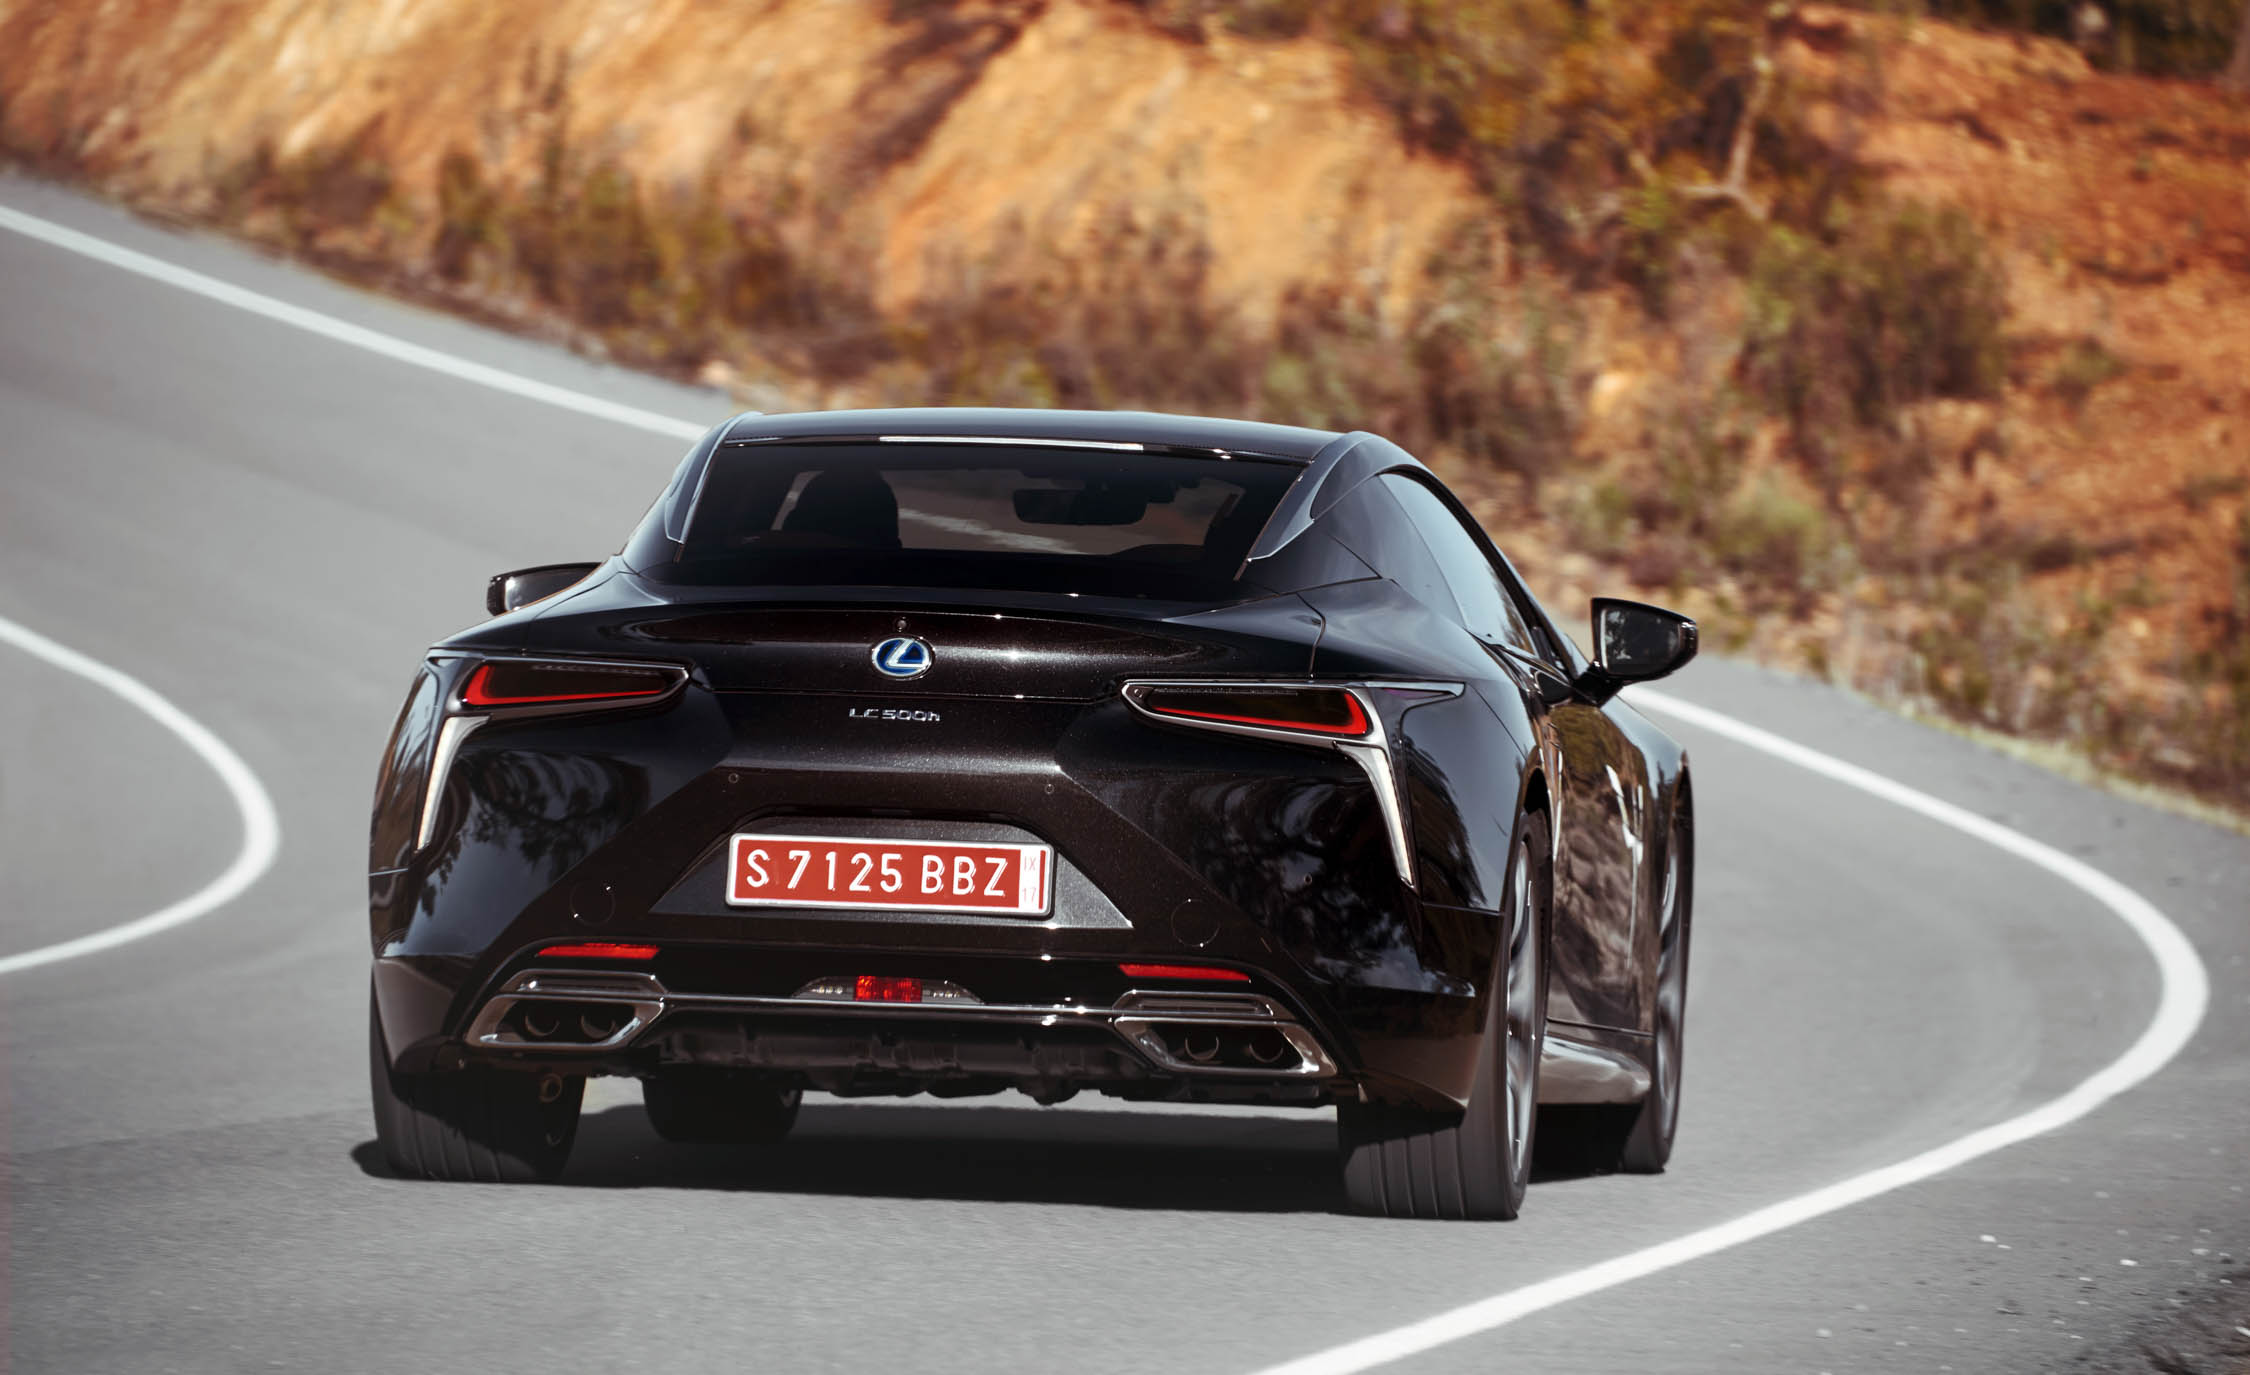 2018 Lexus Lc 500h Black Rear View (View 51 of 84)